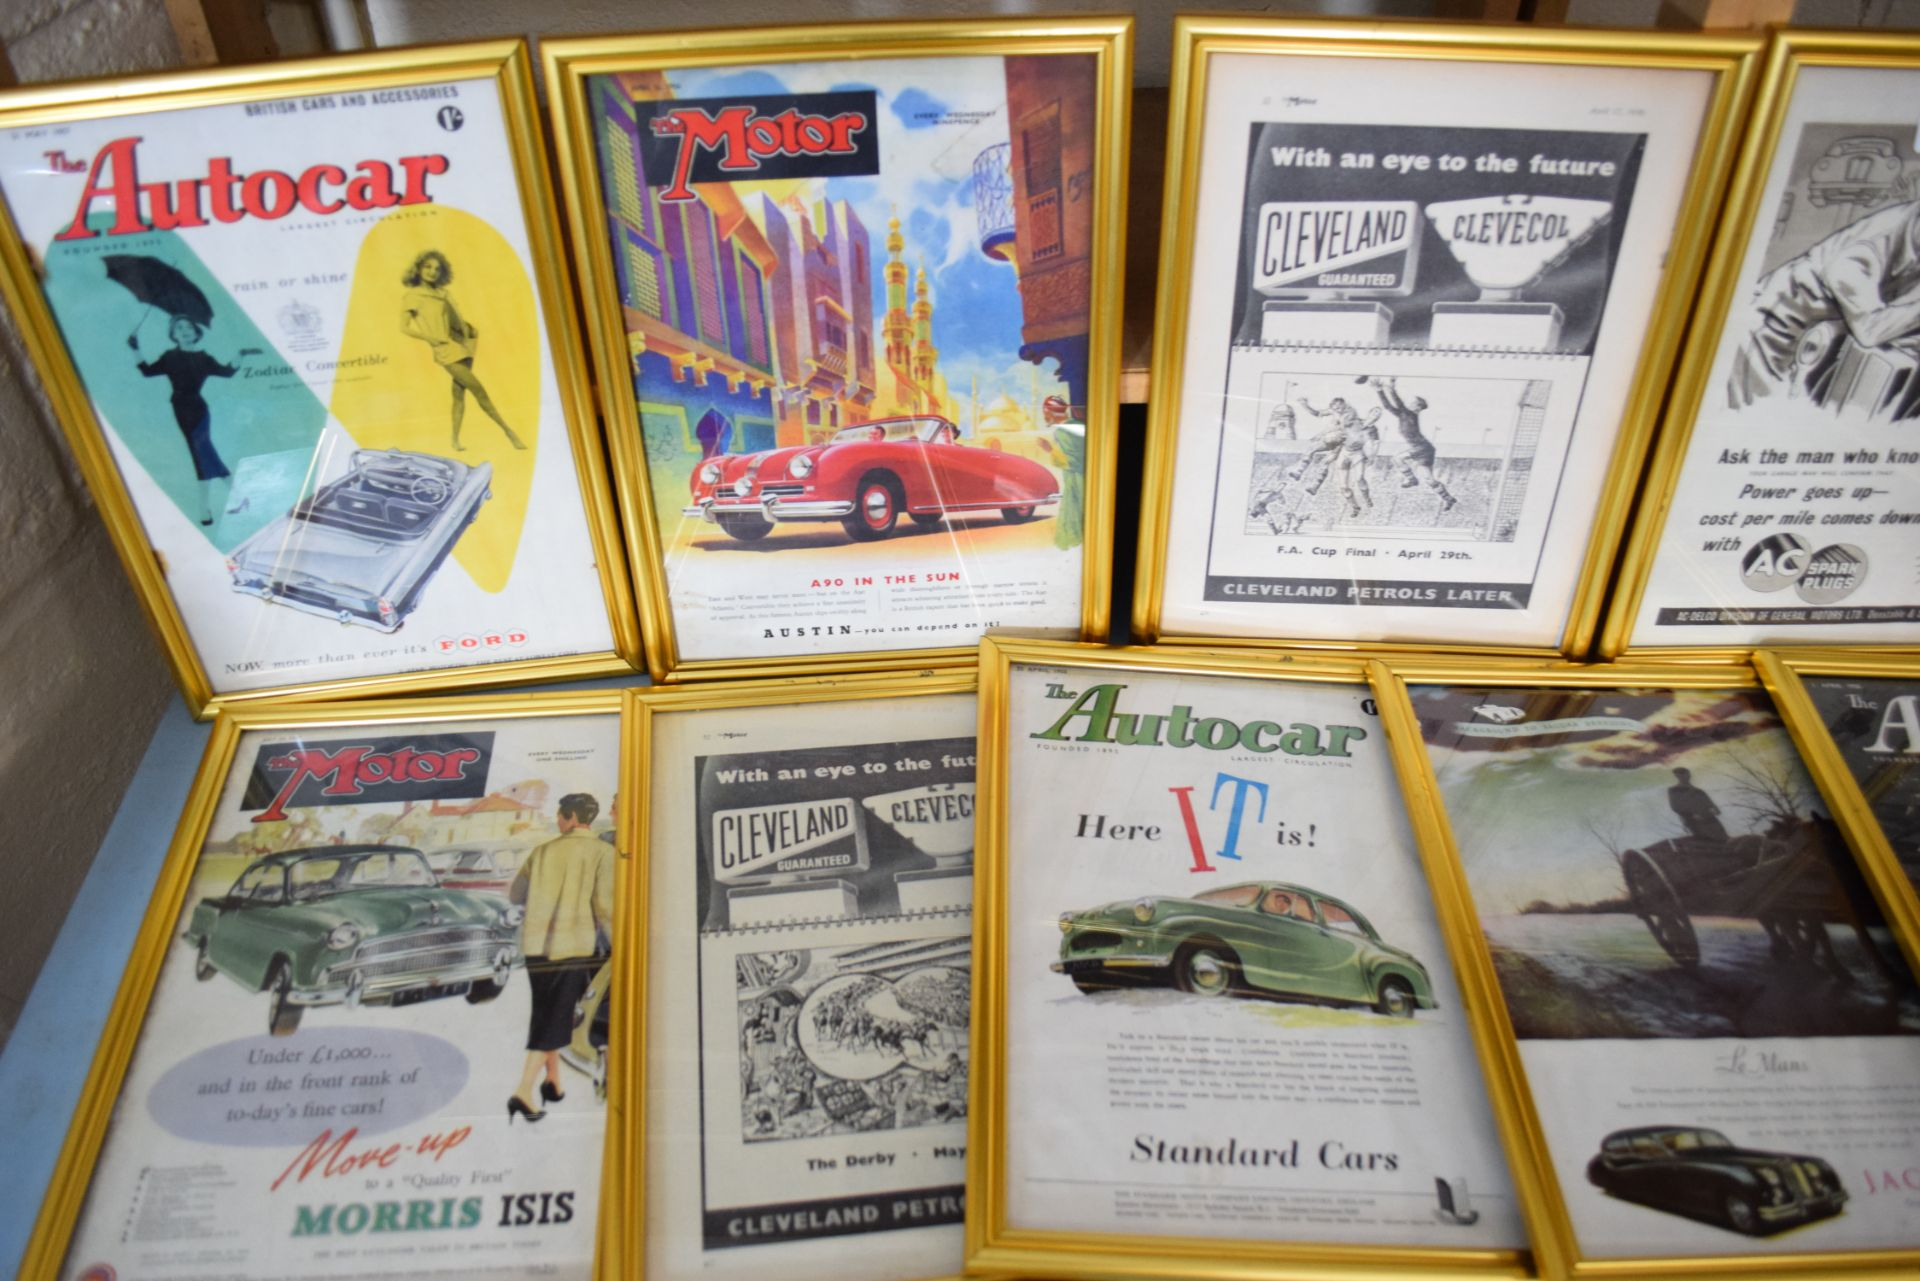 Large quantity of framed magazine advertising prints from The Autocar and The Motor magazines to - Image 2 of 3